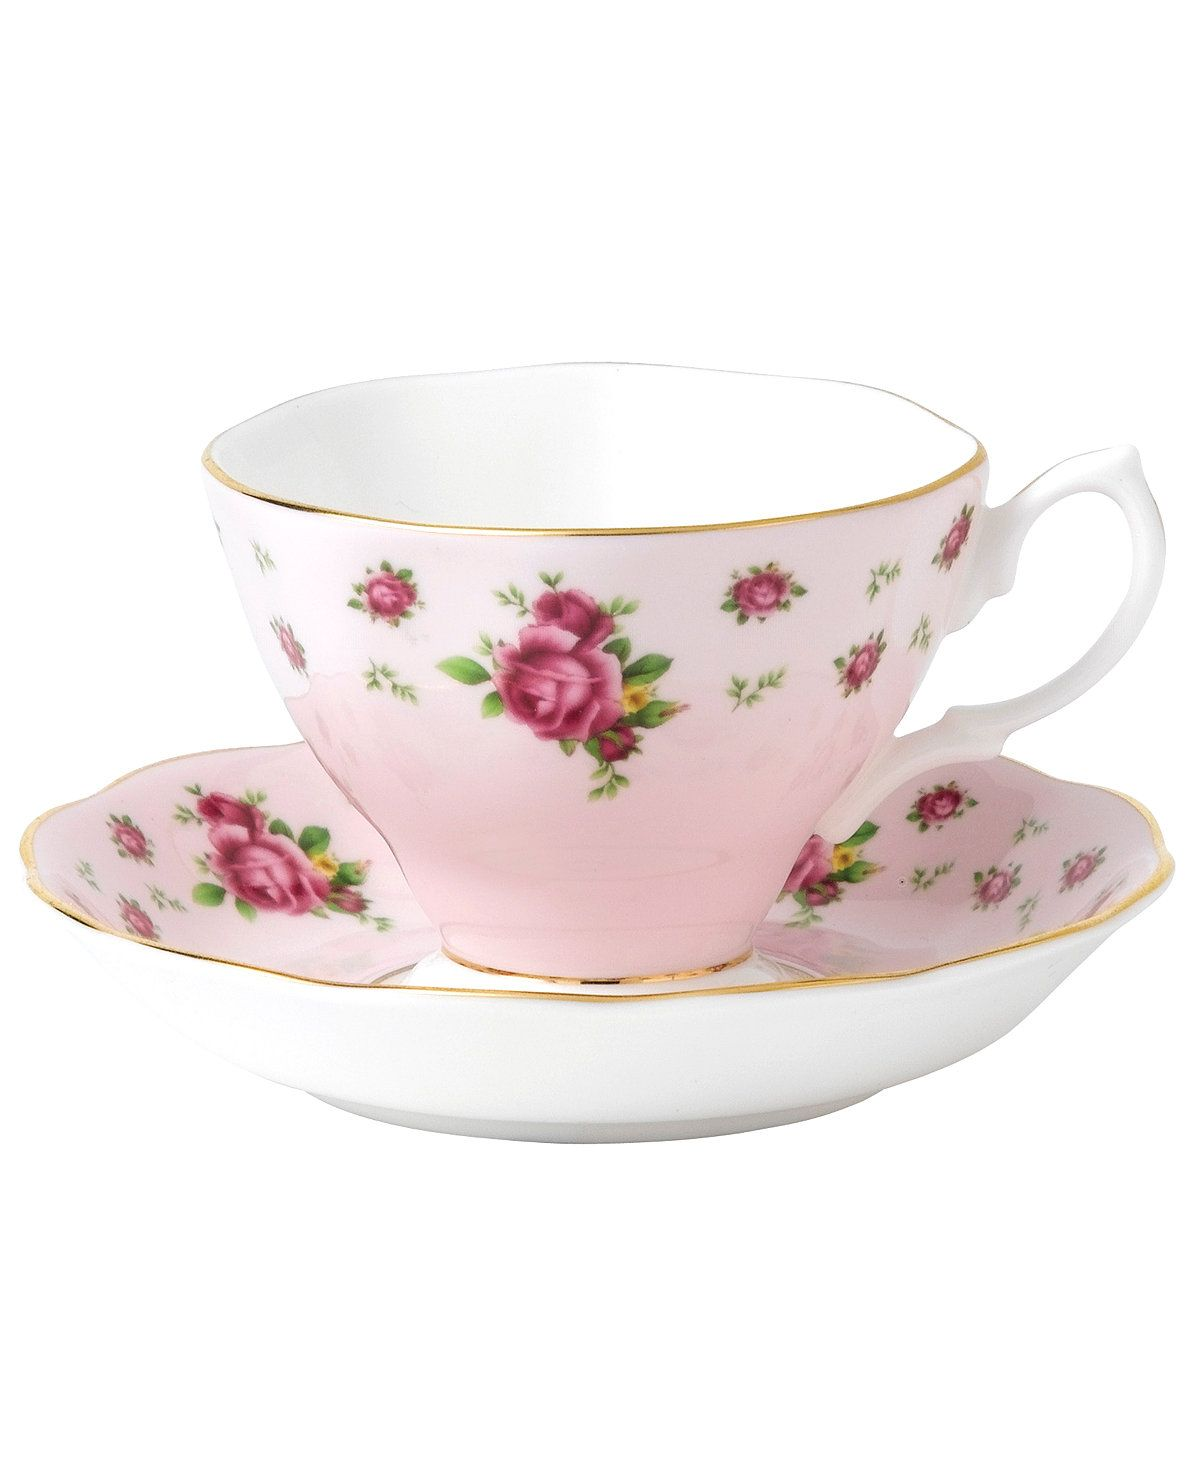 Royal Albert Old Country Roses Pink Vintage Cup and Saucer - Fine China - Macy's